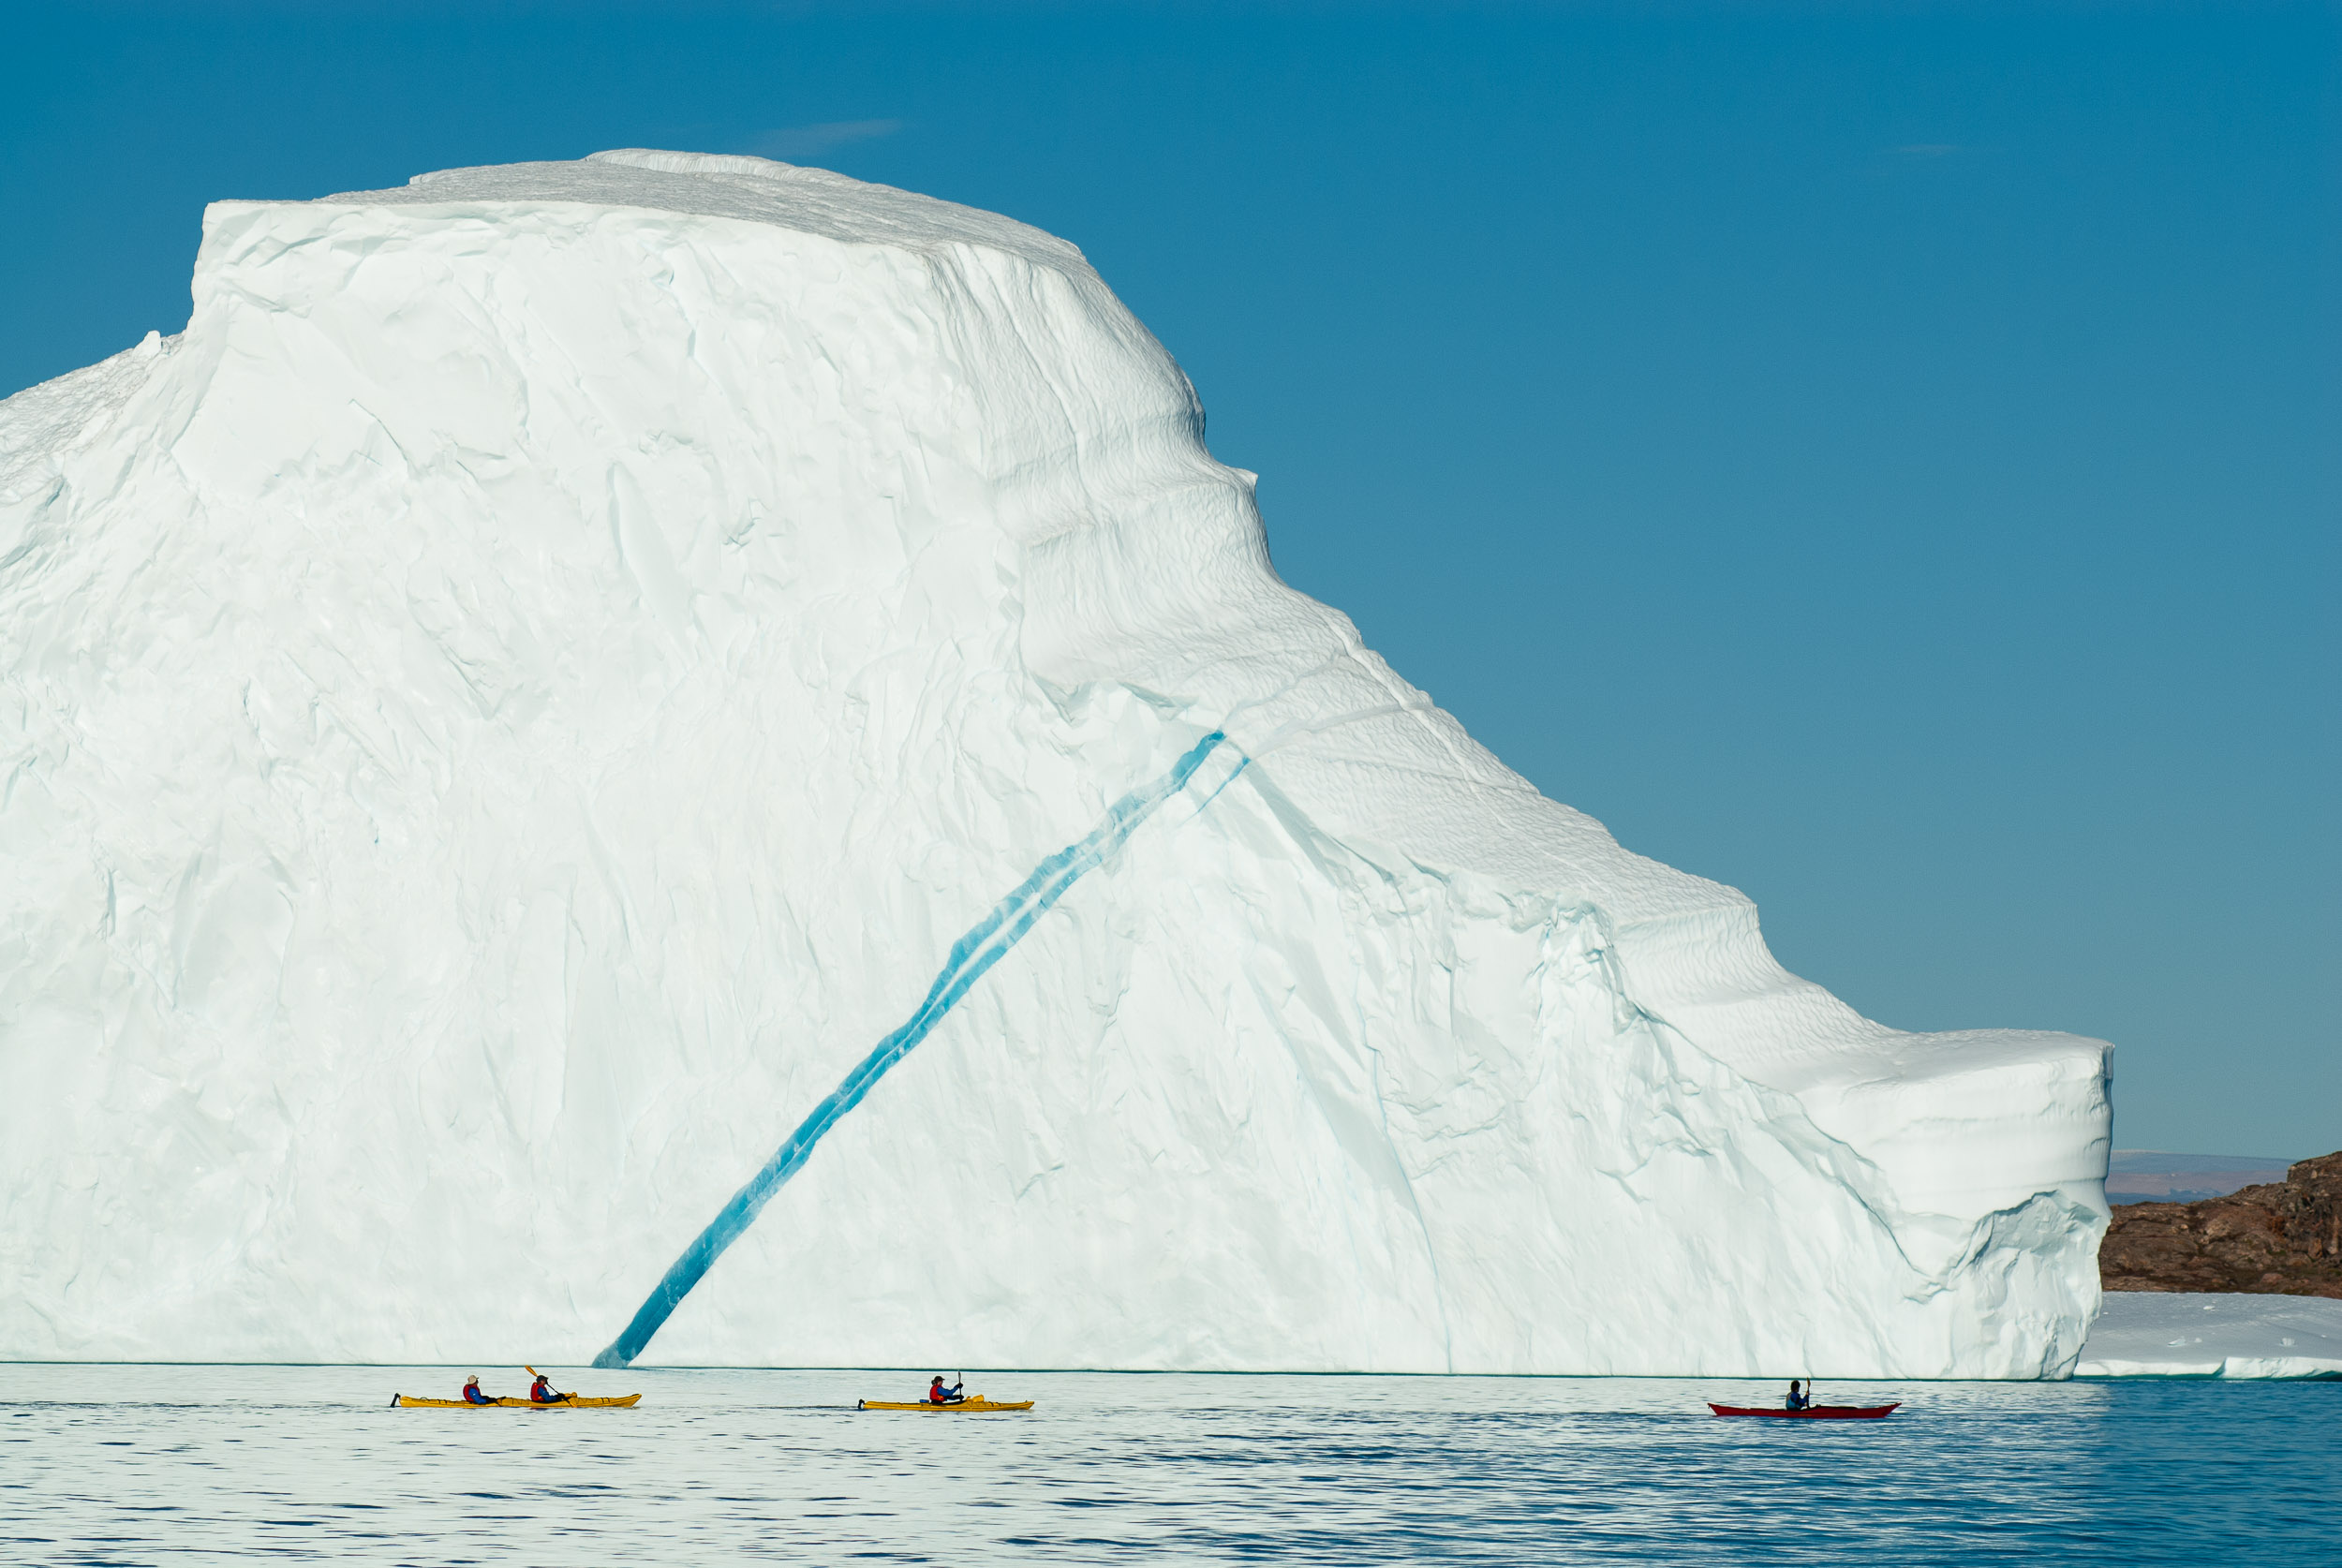 Sea kayaking, Greenland